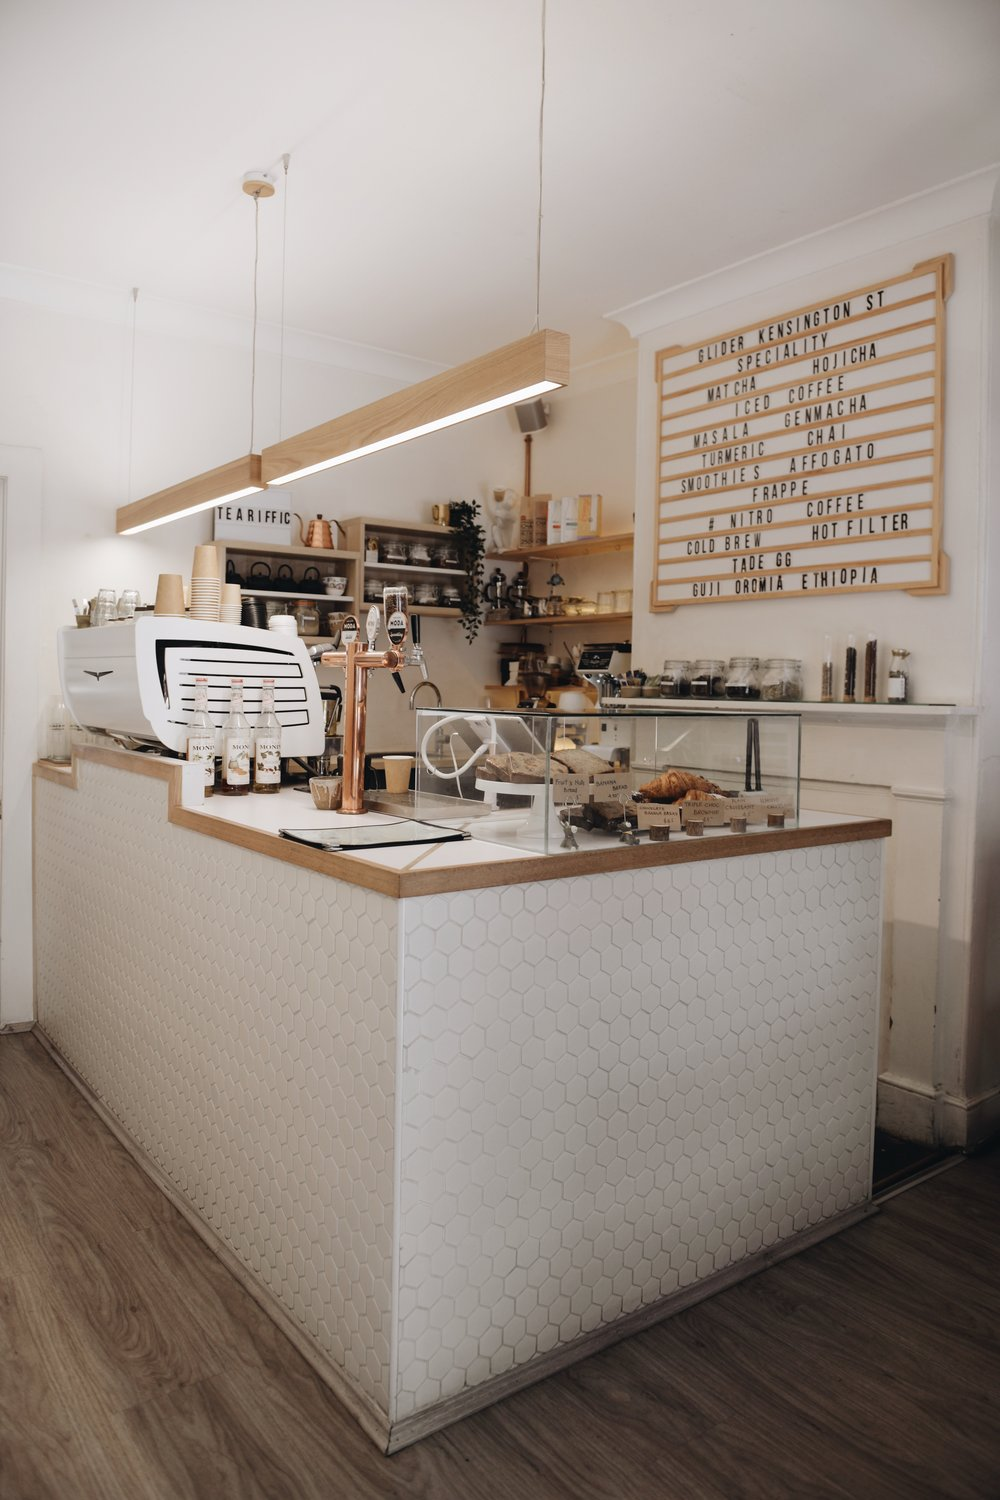 G L I D E R K S C A F E /  Glider   A cosy shop along the Kensington Street (where next door is the famous the Old Clare Hotel) and an eatery street. You can find matcha items and coffees here with some healthy options for food.  📍  Glider KS  26 Kensington Street  Chippendale  NSW